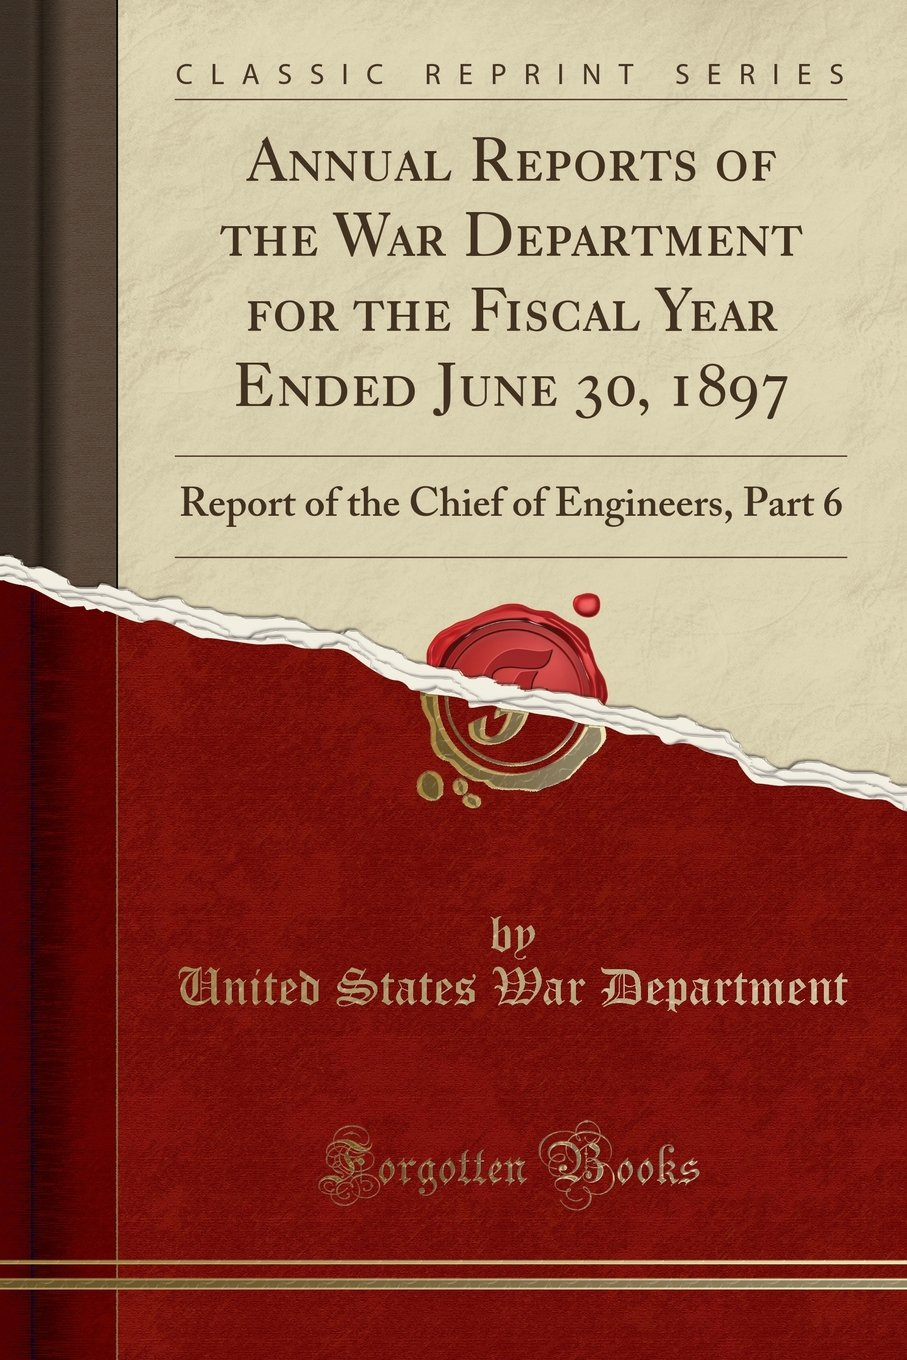 Download Annual Reports of the War Department for the Fiscal Year Ended June 30, 1897: Report of the Chief of Engineers, Part 6 (Classic Reprint) ebook